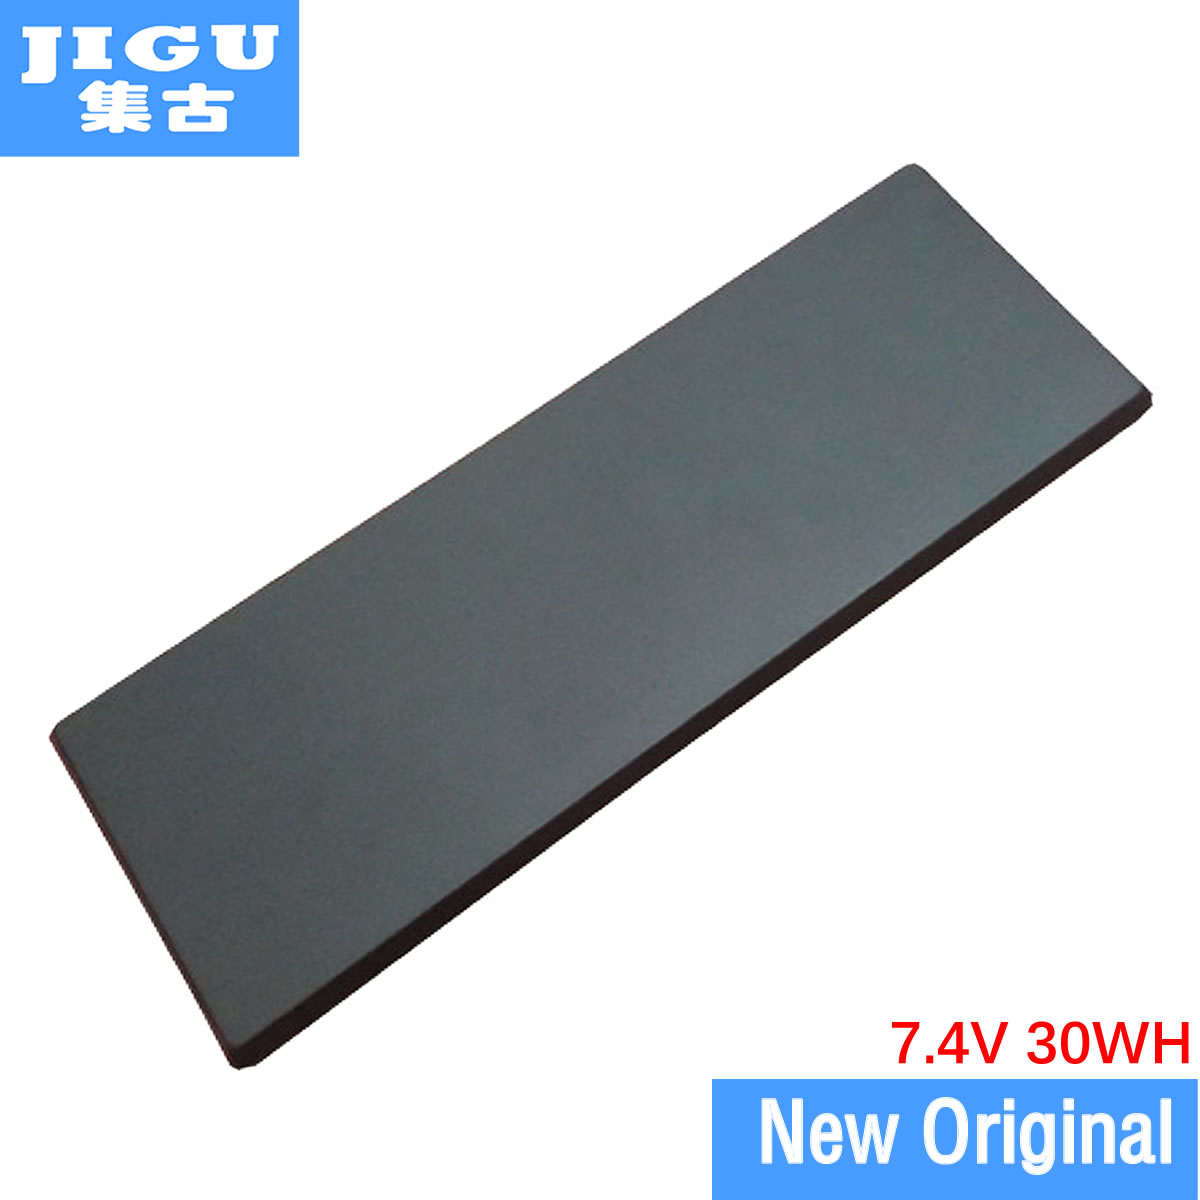 JIGU 1VH6G 312-1412 312-1423 C1H8N CT4V5 FWRM8 KY1TV PPNPH Original laptop  Battery For Dell Latitude 10 tablet Series